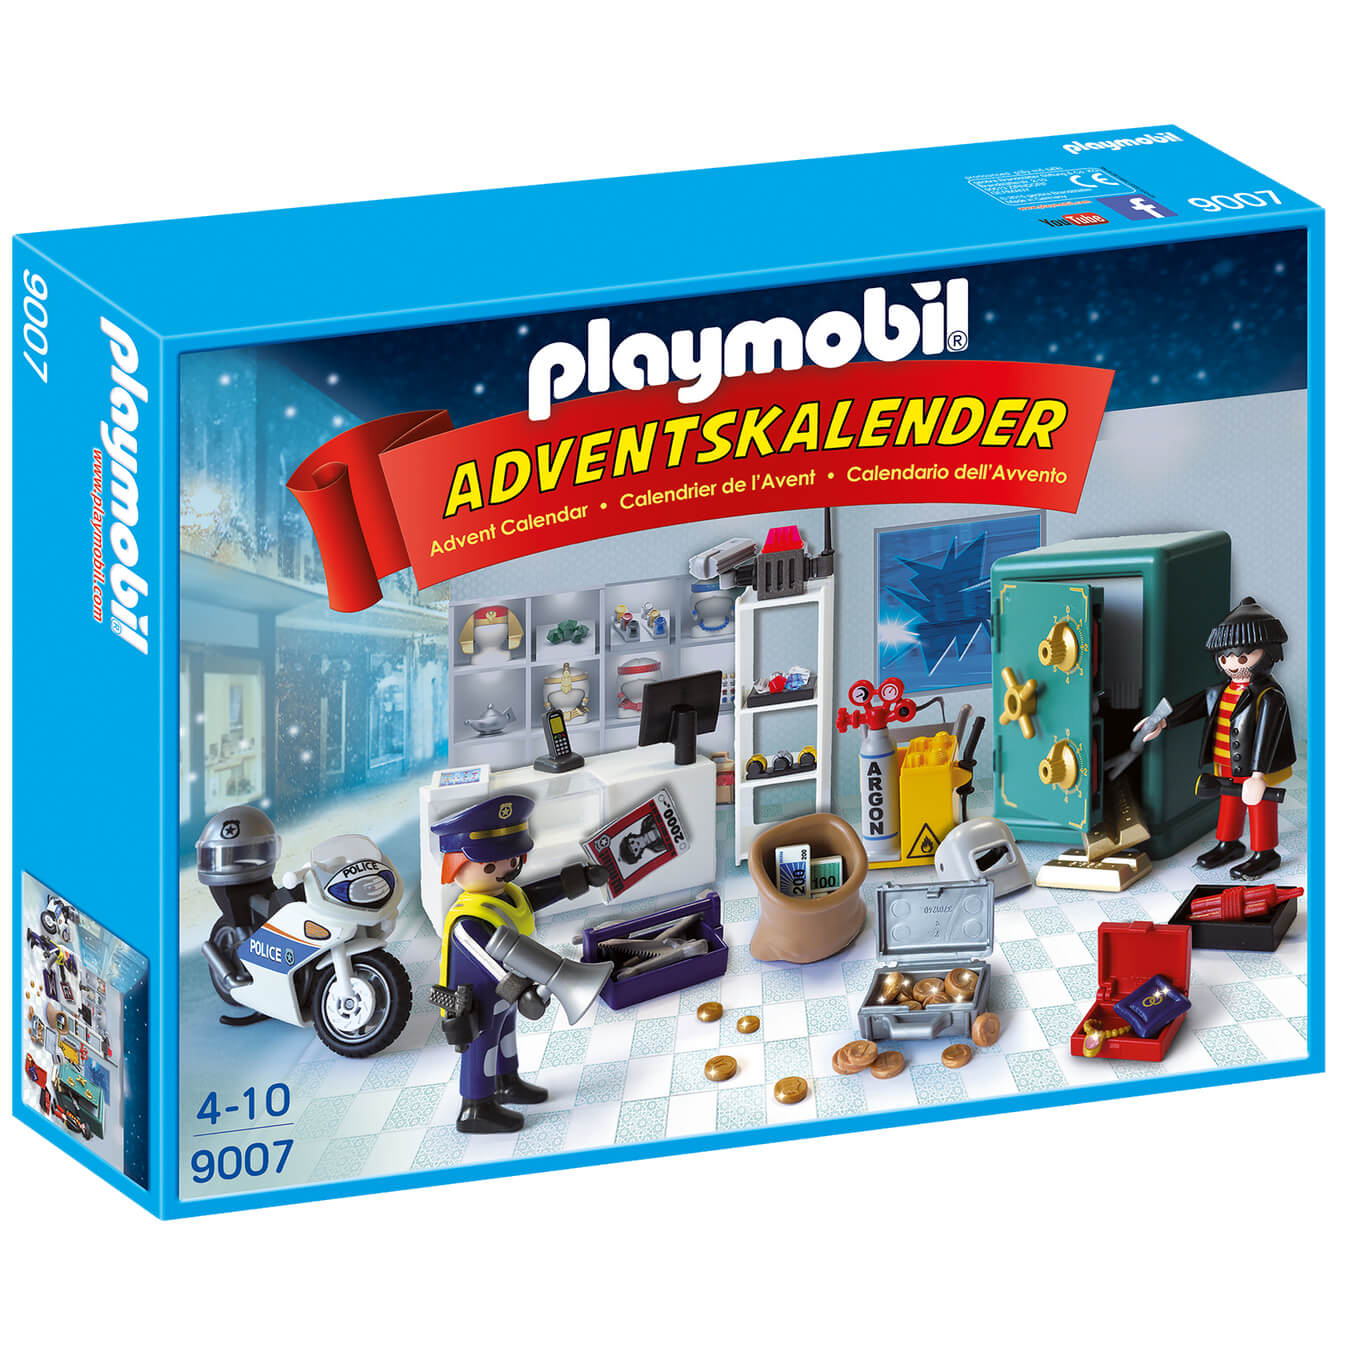 Playmobil Weihnachtskalender.Playmobil Jewel Thief Police Operation Advent Calendar With Working Safe And Money Box Function 9007